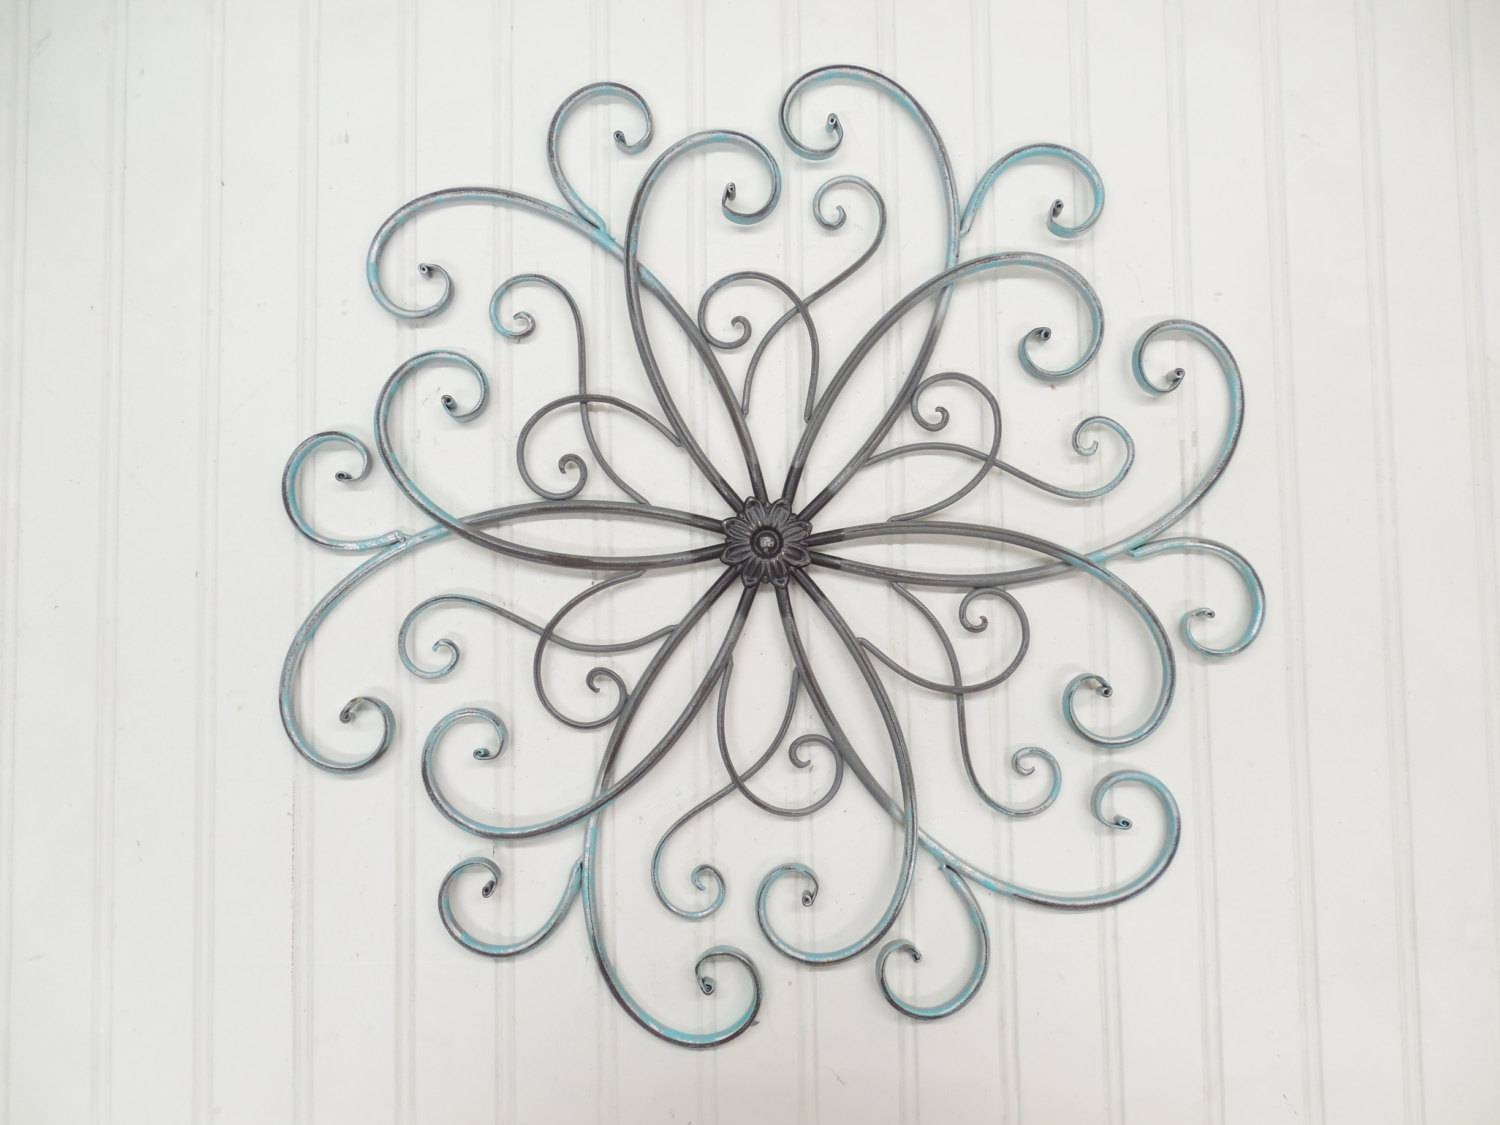 Tips & Ideas: Faux Wrought Iron Wall Art With Wood Panels For With Most Up To Date Faux Wrought Iron Wall Art (View 22 of 30)